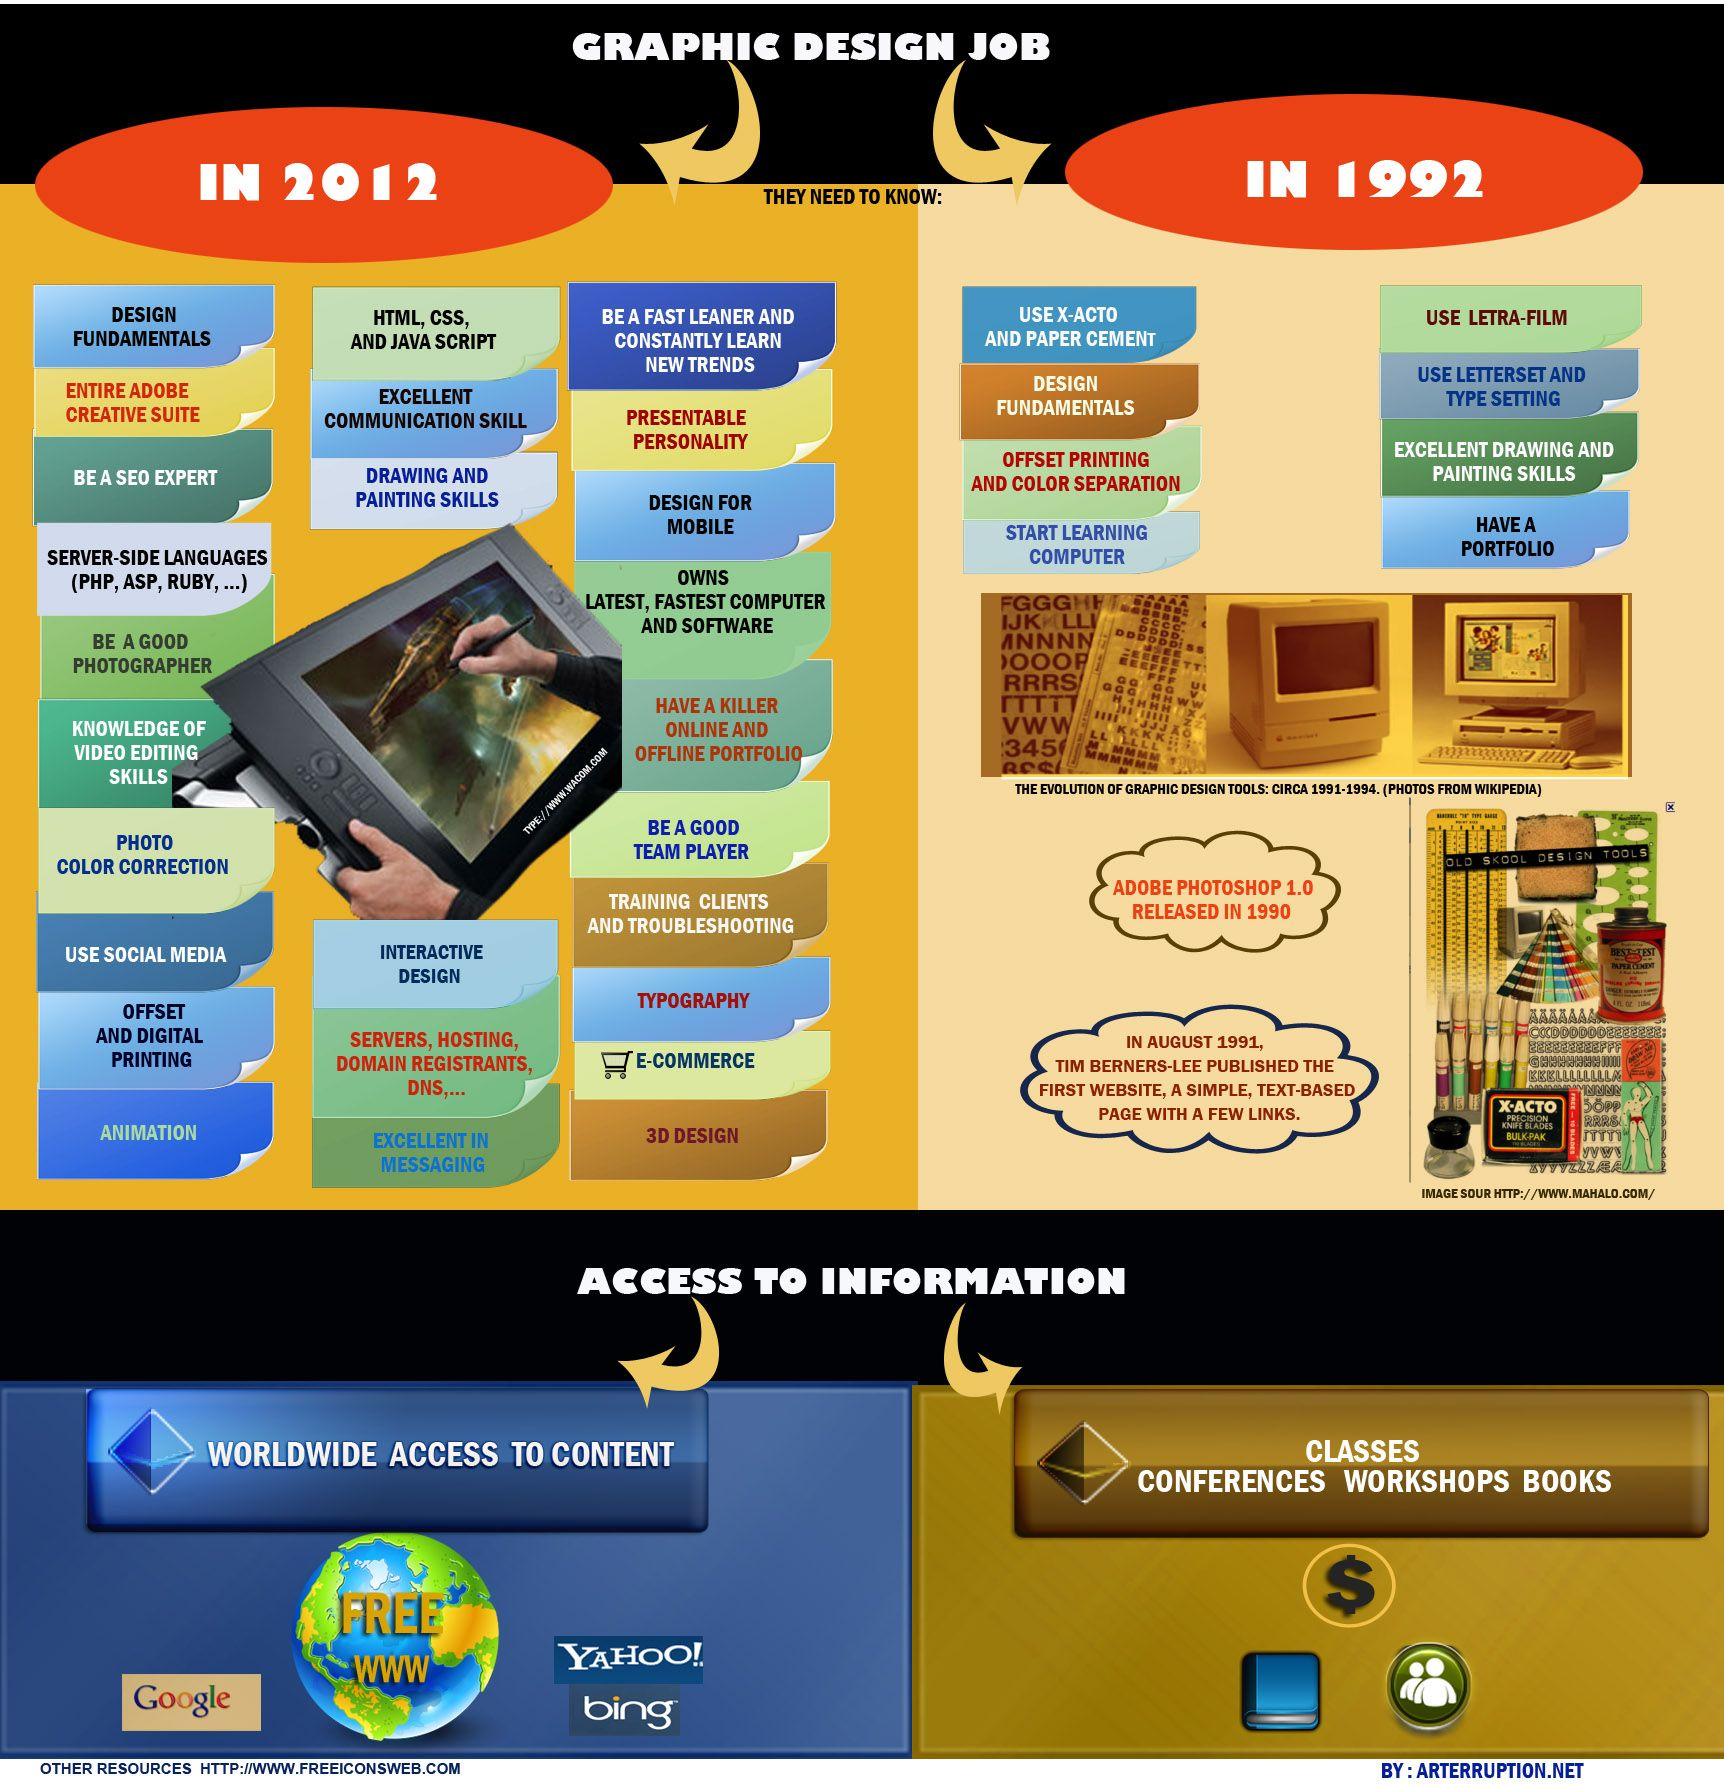 Compare graphic design job in 1992 vs 2012 (With images